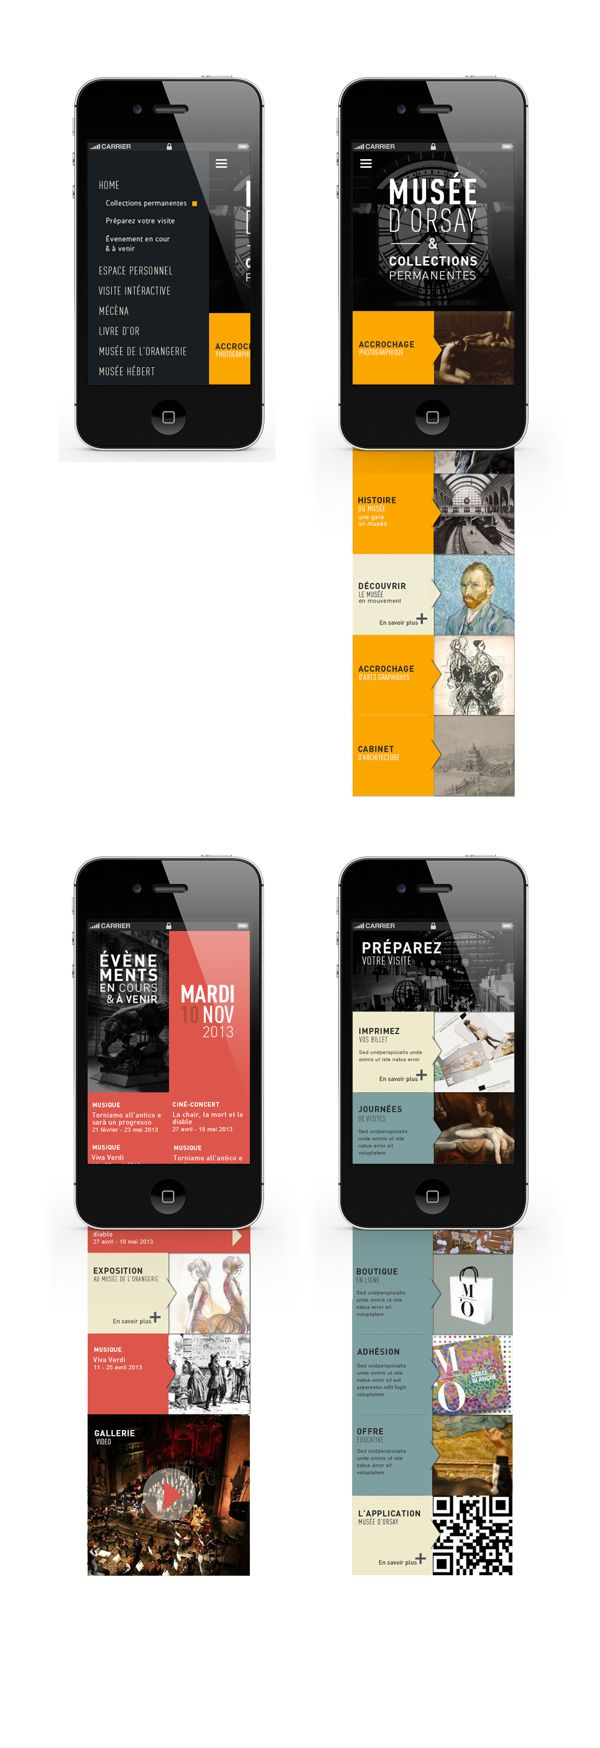 Orsay Museum by Jeremy Perrot-Minnot, via Behance#web #ui #uix #mobile